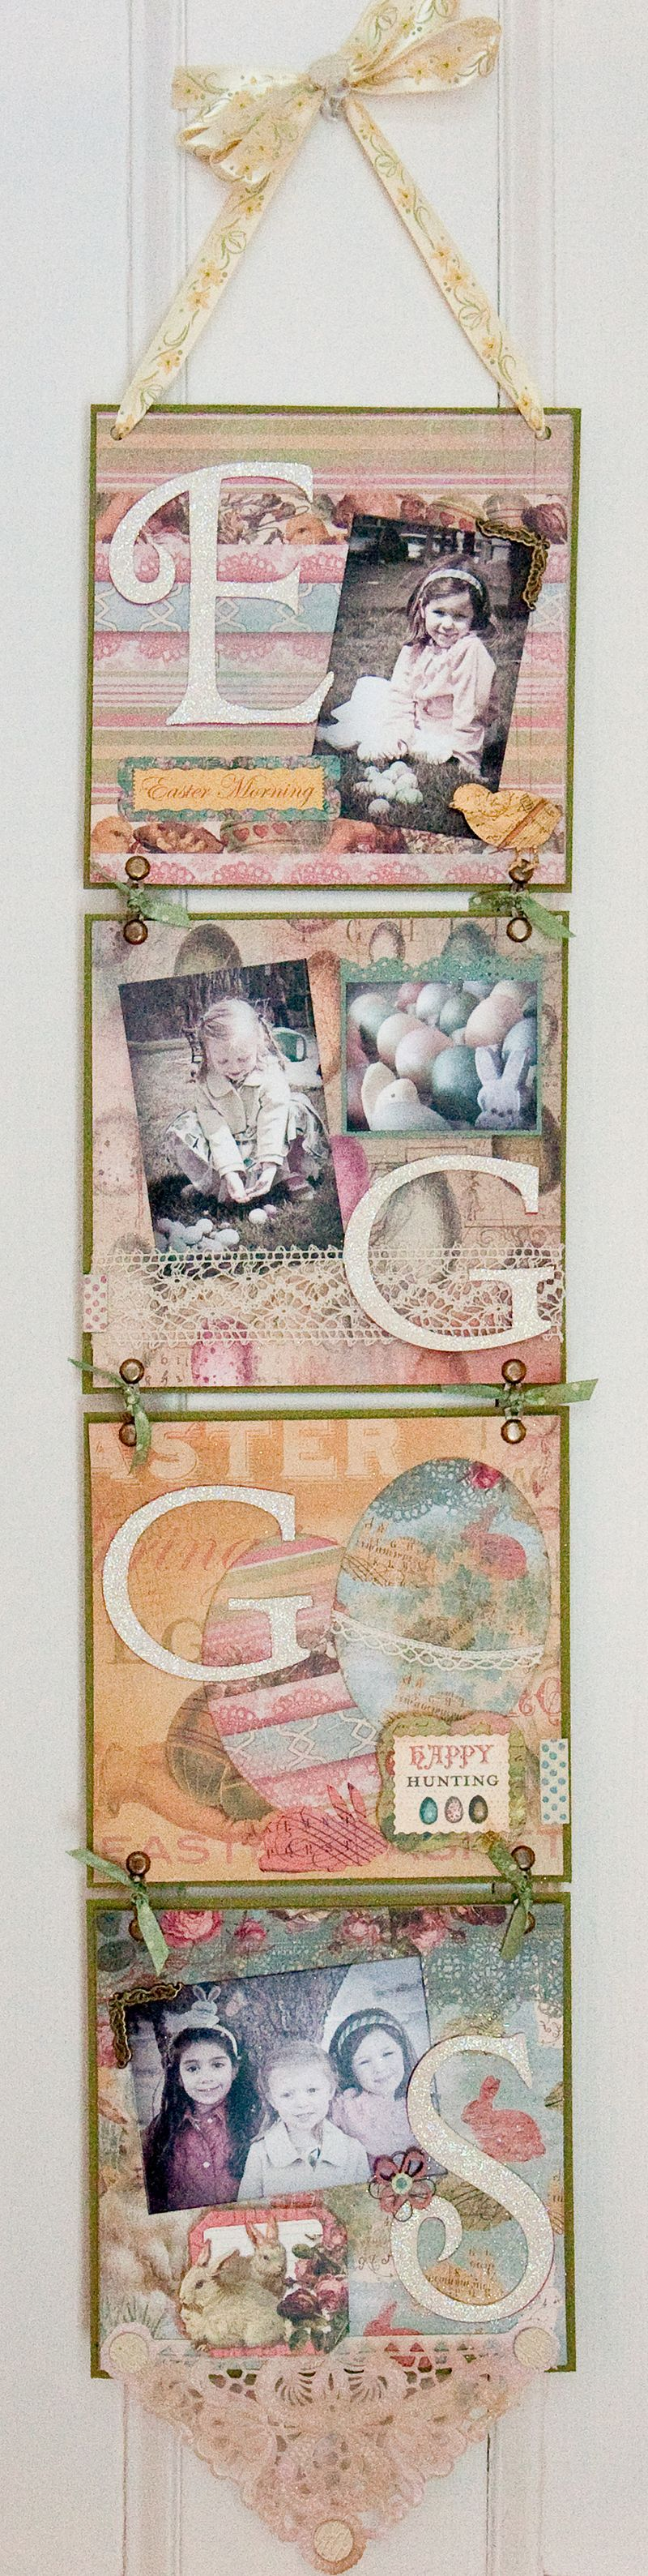 Easter Wall Hanging-1